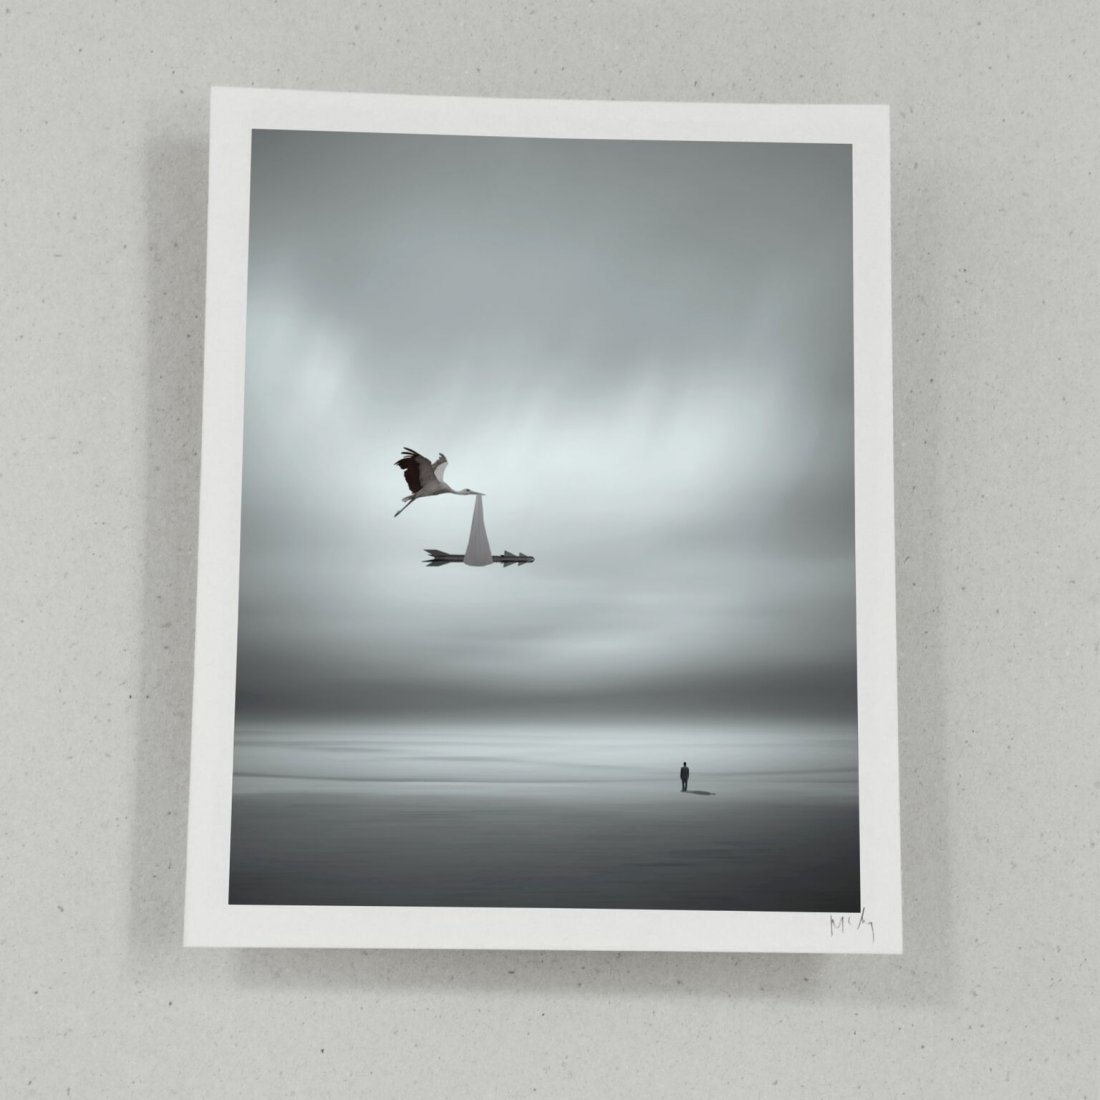 Philip Mckay - Airborne Folio - Six Prints - 5